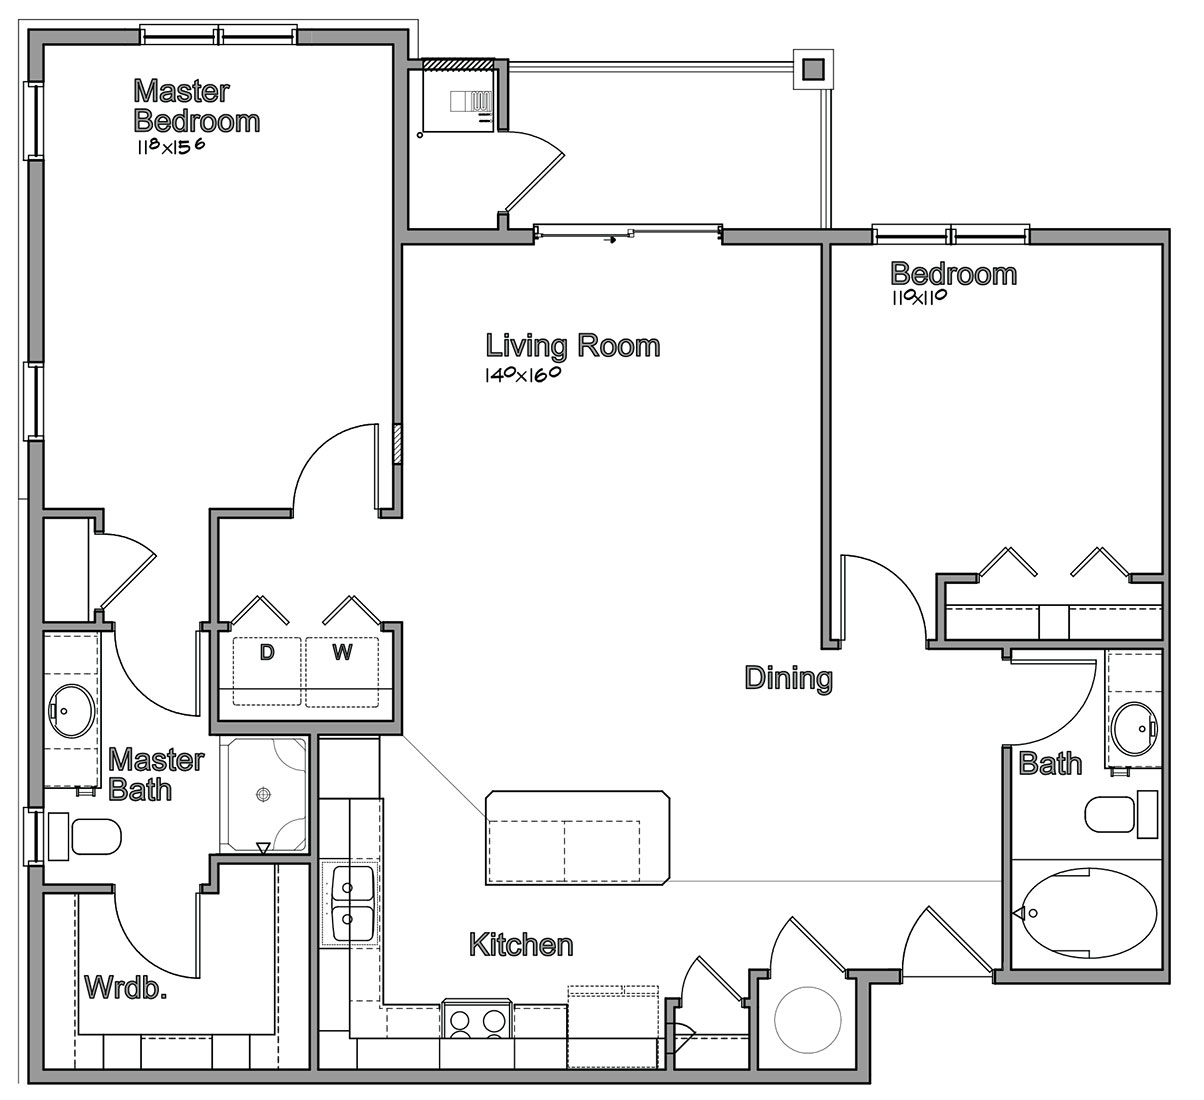 Montclair Village - Floorplan - Holbrook